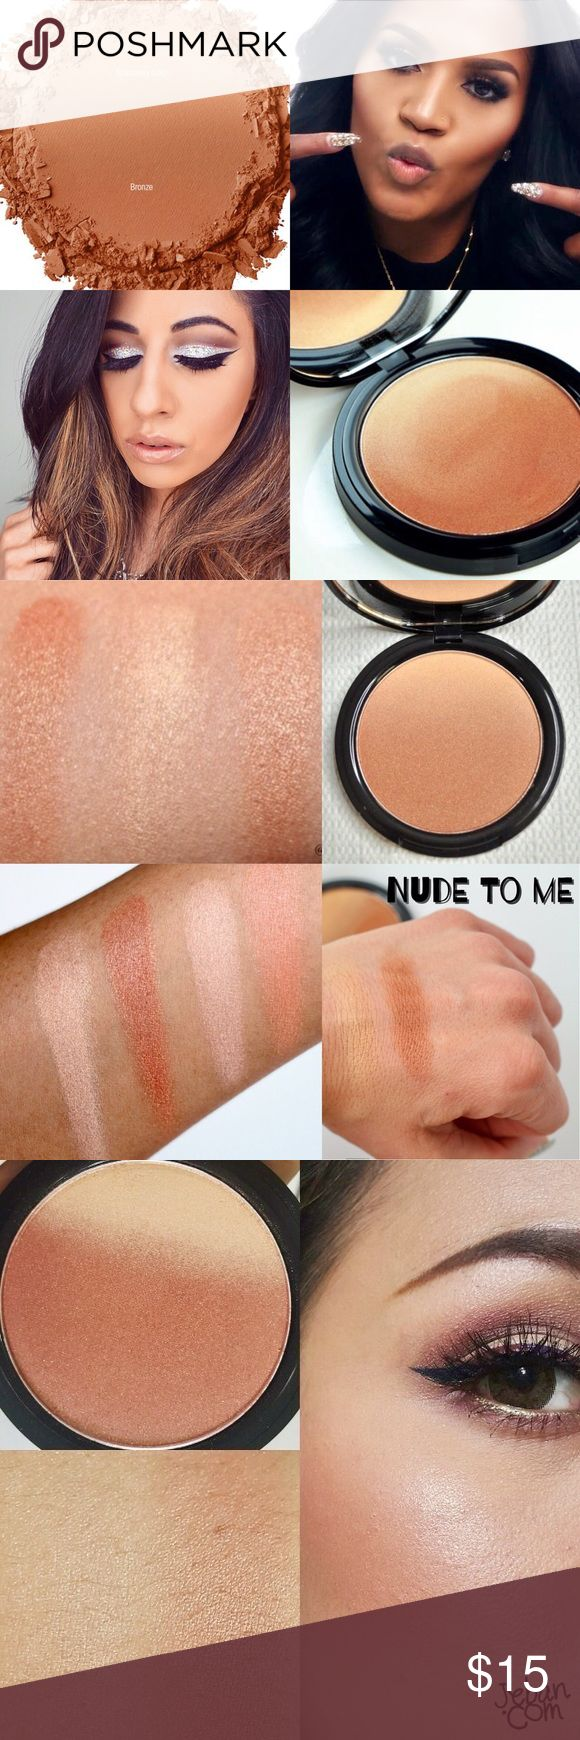 🔅NEW NYX Ombre Blush *Nude To Me*🔅W/GIFTS!🎁😍❤️ 🔅BRAND NEW & UNOPENED🔅NYX OMBRÉ BLUSH IN *NUDE TO ME*🔅Treat ur cheeks to a *radiant* flash of color w/ NYX's NEW Ombré blush, a new gradient blush inspired by the latest ombre trend! This -must have- formula features 2 silky colors blended into one perfectly coordinated shade combo! It's like they were meant for each other!🔅EXPEDITED SHIPPING!!🔅BUNDLE UR FAV 3 ITEMS FOR AN *ADDITIONAL* 15% OFF OR PICK 2 FOR AN *EXTRA* 10%…